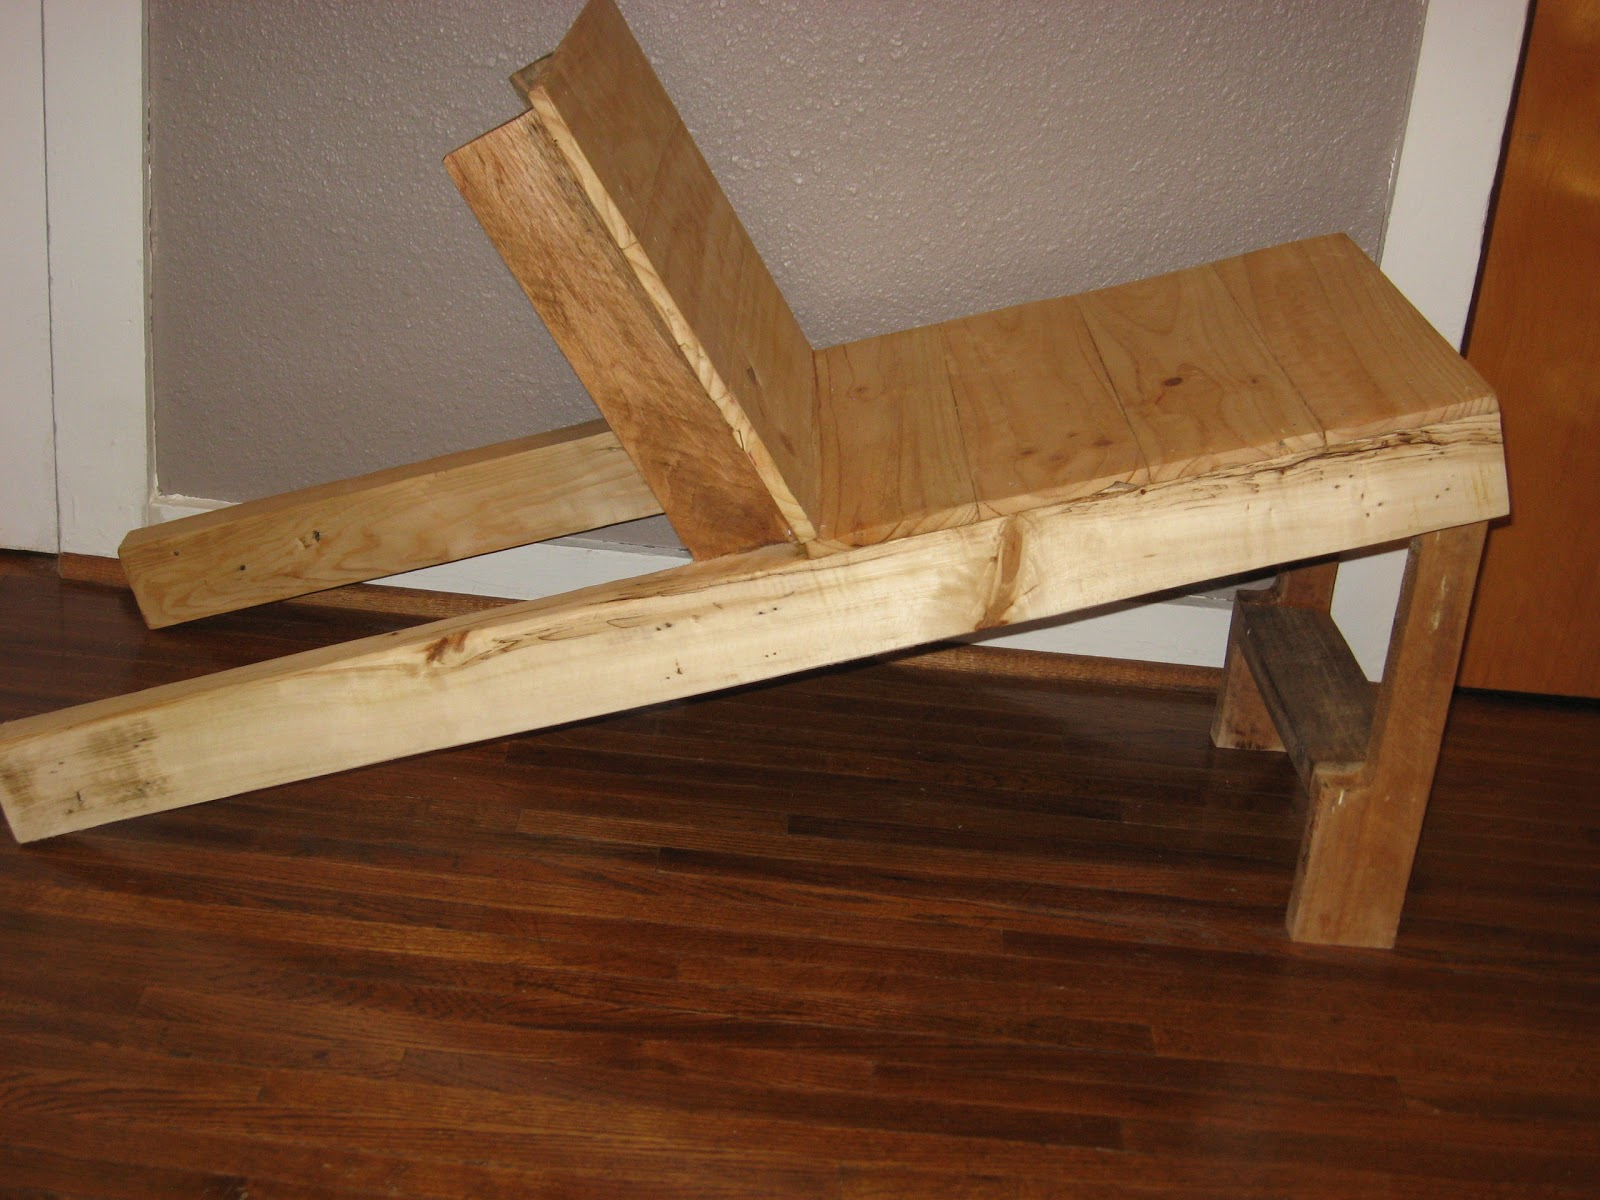 Unusual Wooden Chair Folding Online Furniture From Reclaimed Materials Repurposed Pallet Now